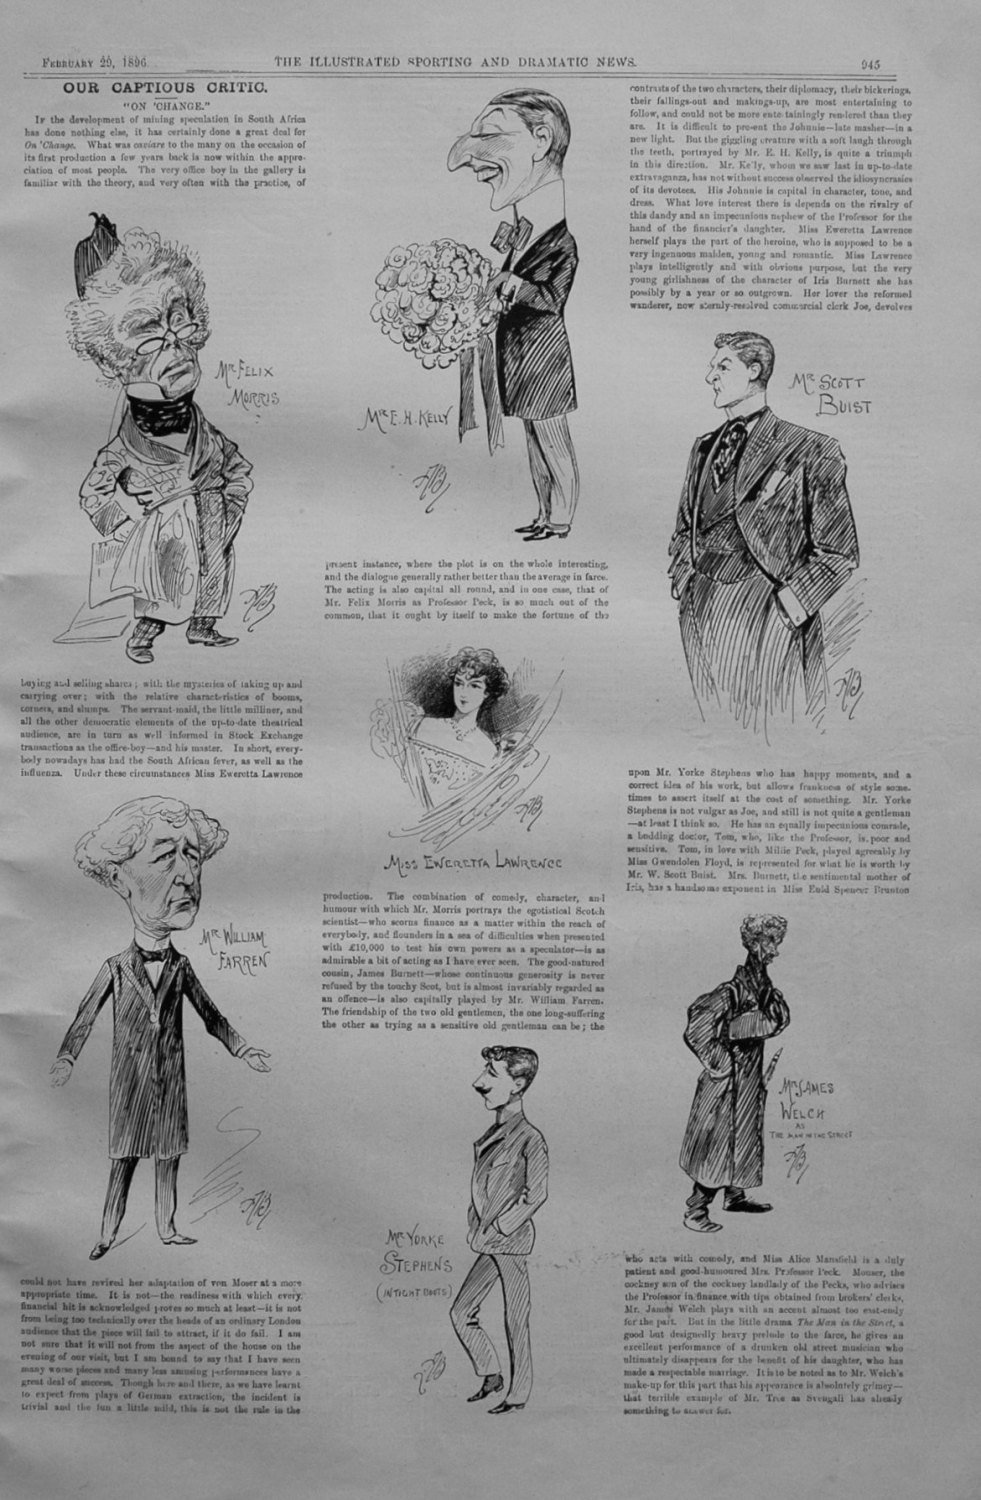 Our Captious Critic, February 29th 1896.